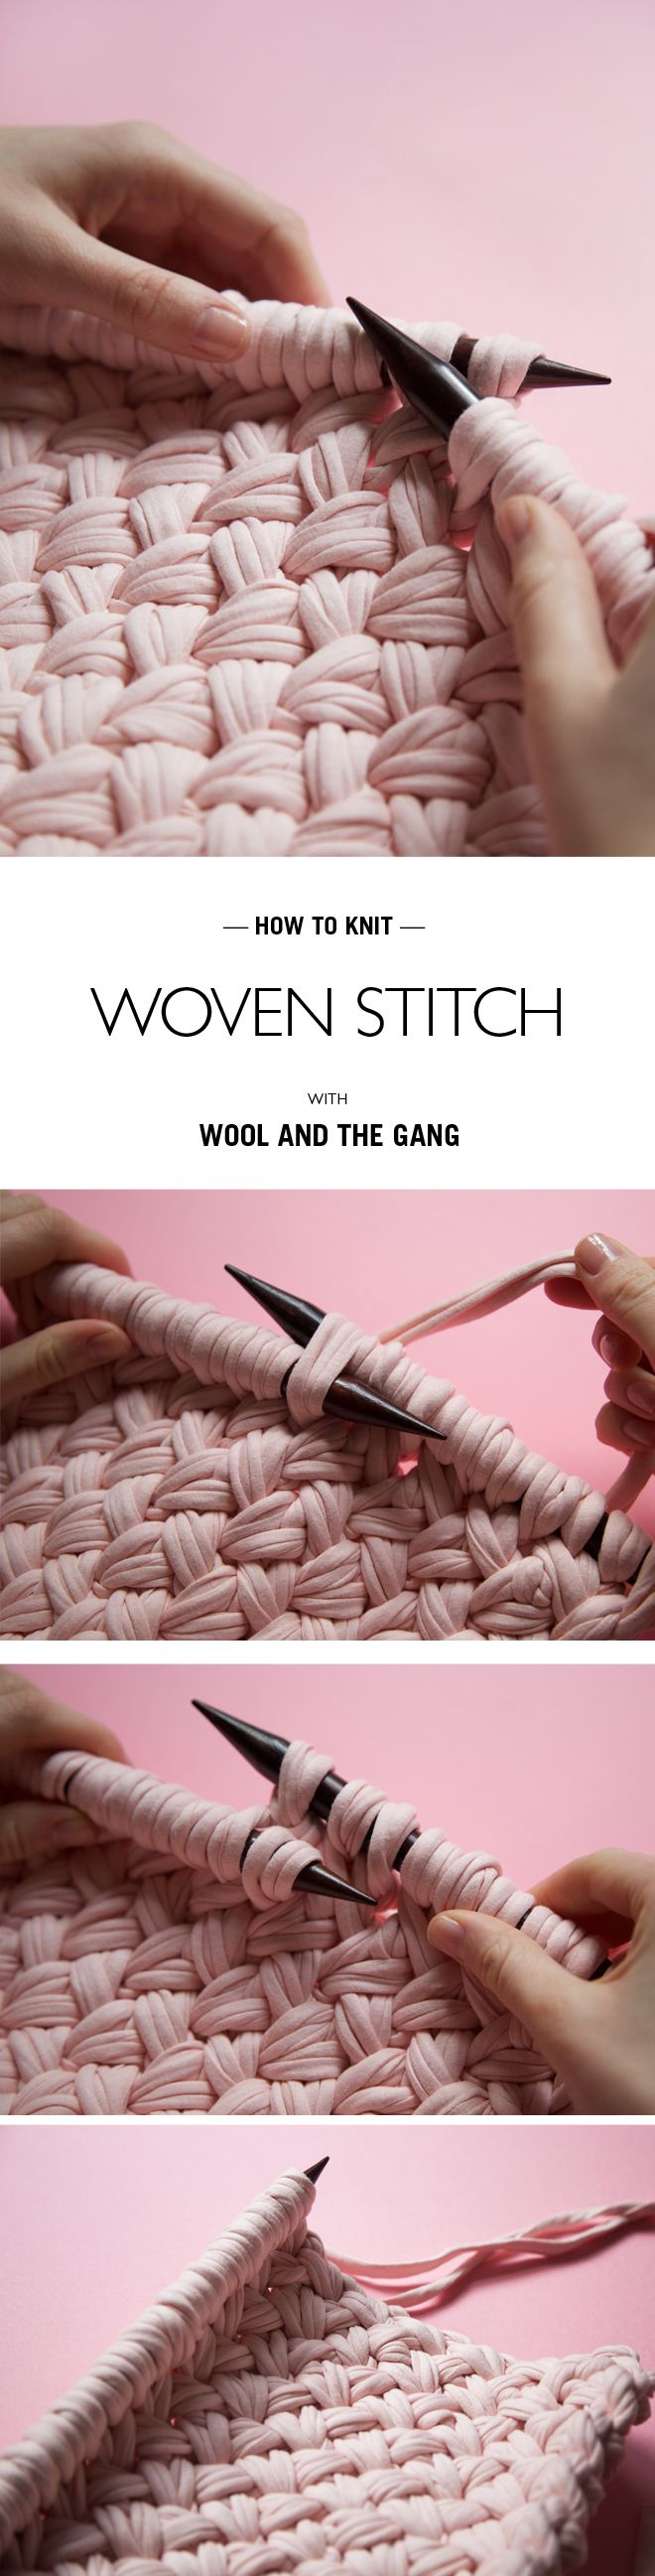 HOW TO... WOVEN STITCH @woolandthegang | HOW TO KNIT | Pinterest ...